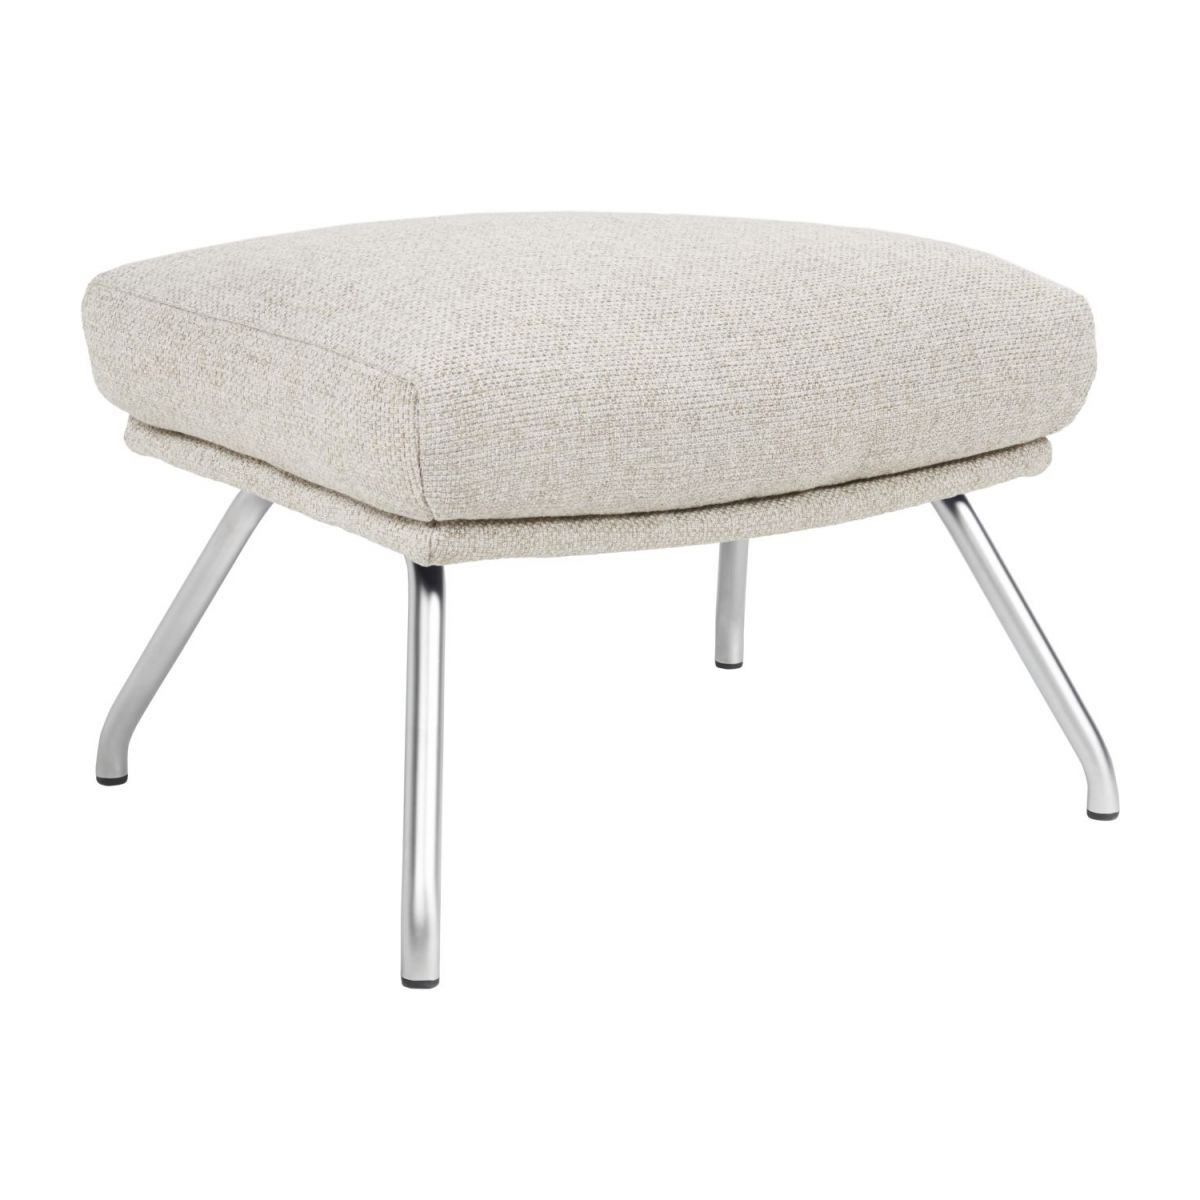 Footstool in Lecce fabric, nature with matt metal legs n°1